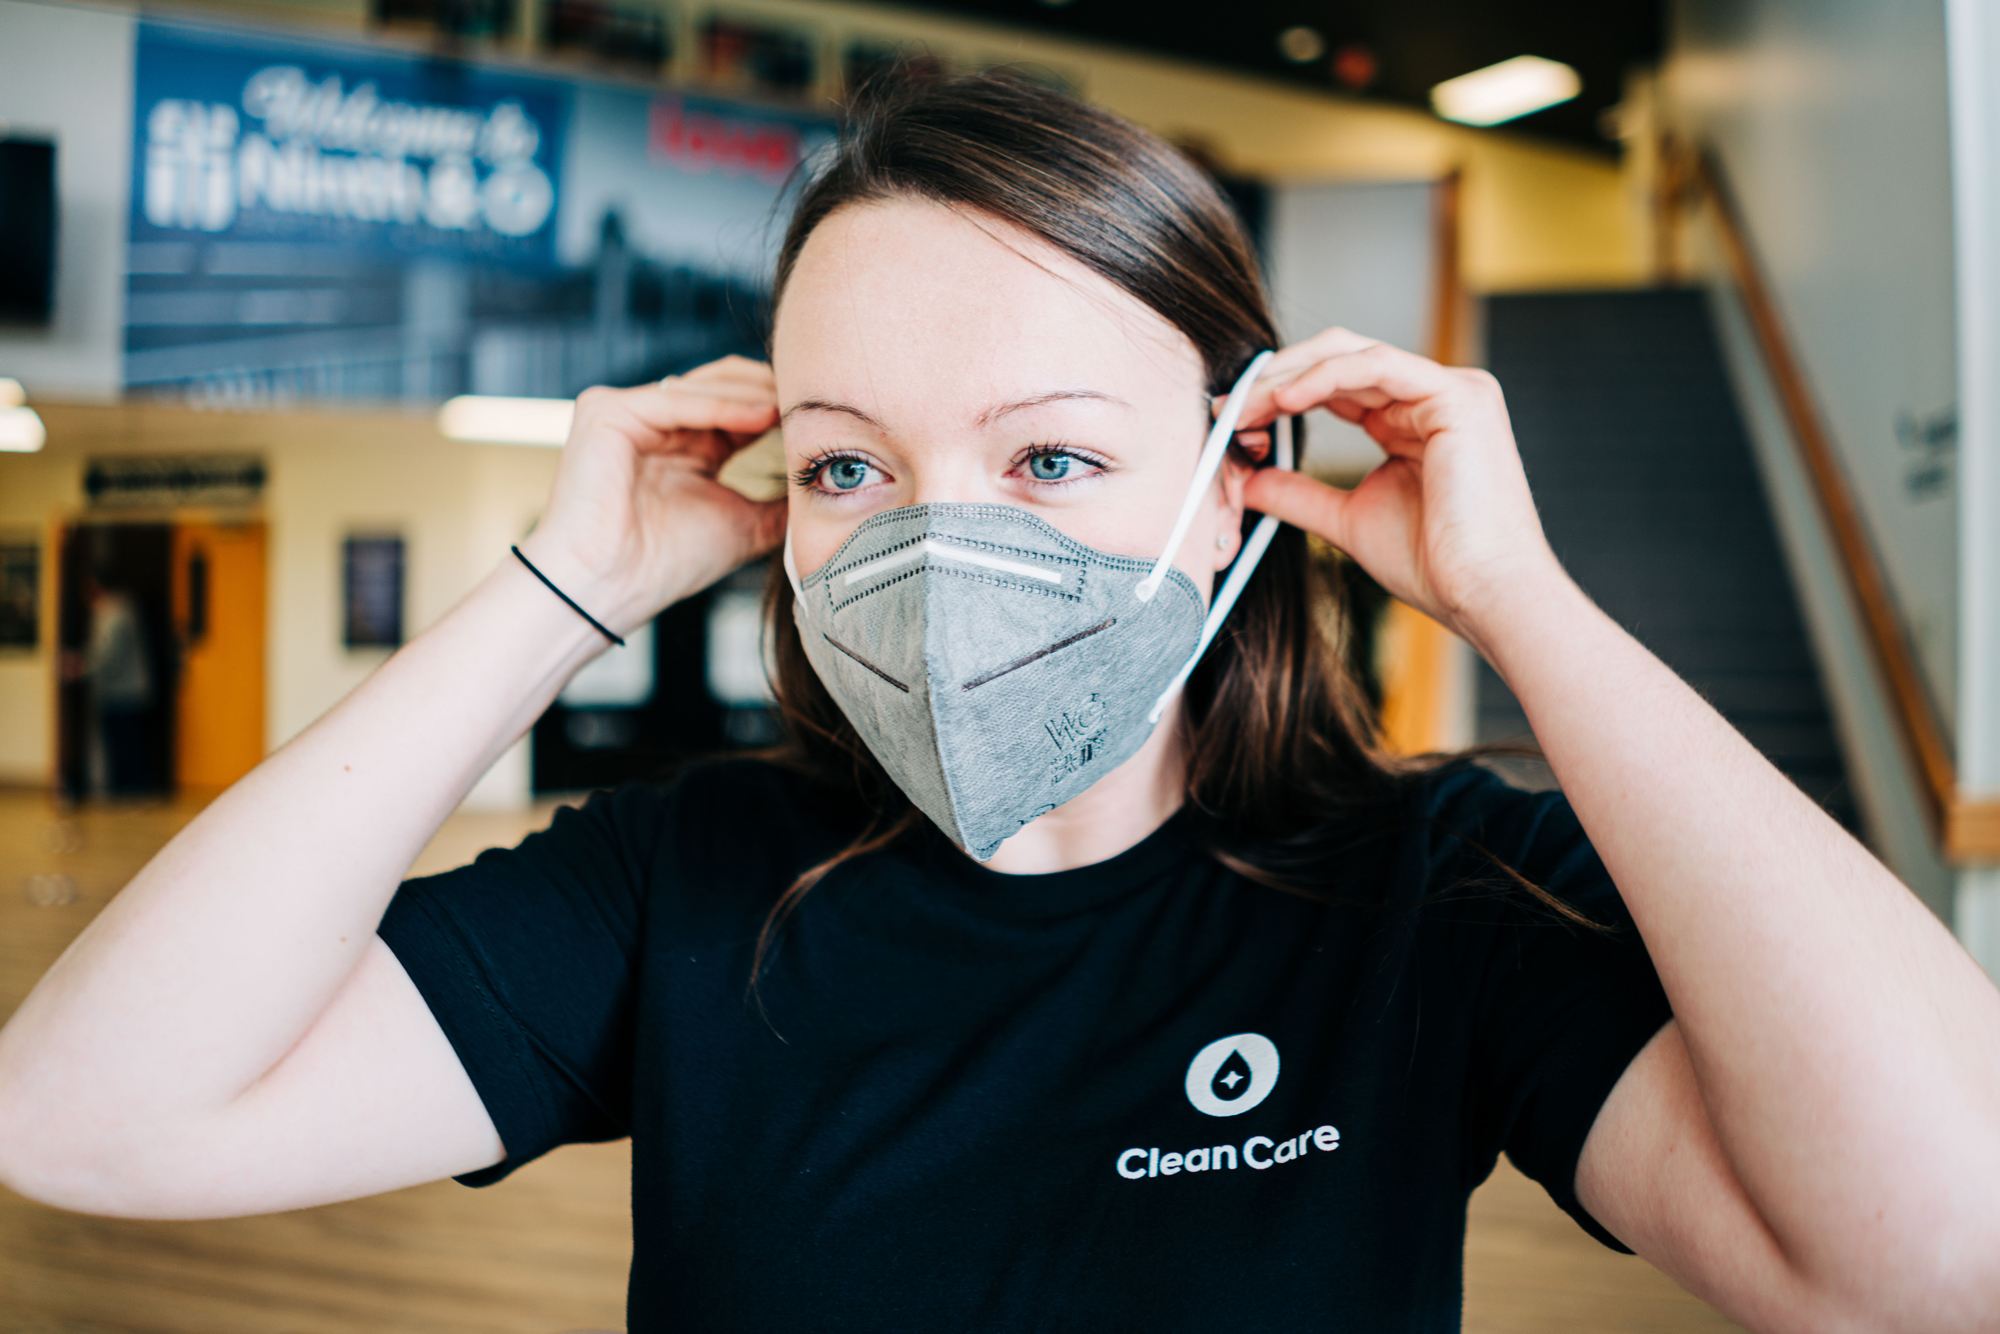 Clean Care worker putting on protective mask